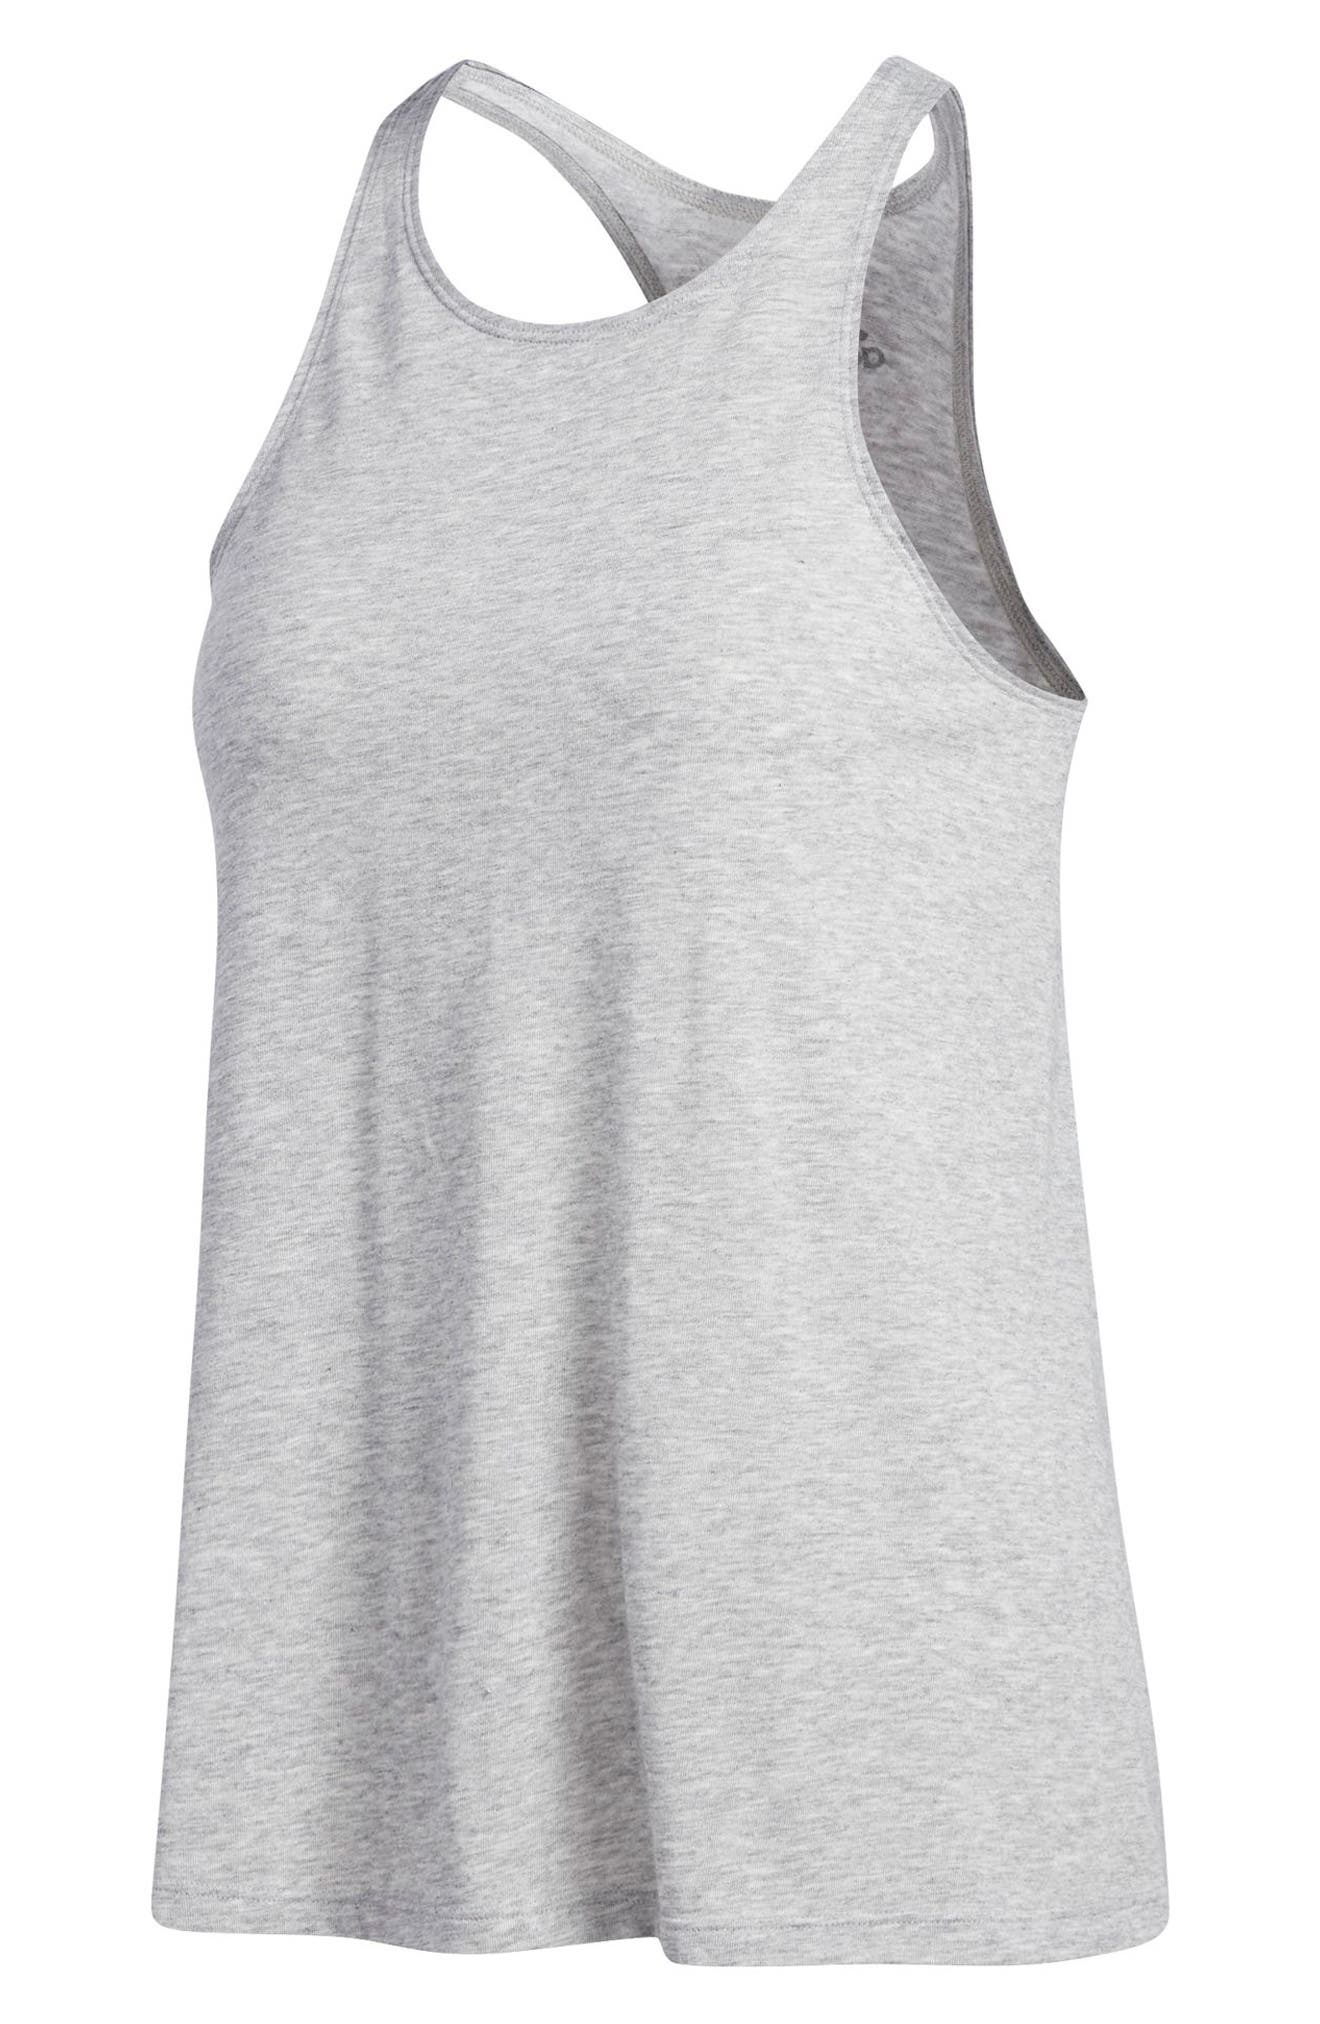 Performer Open Back Tank,                             Alternate thumbnail 17, color,